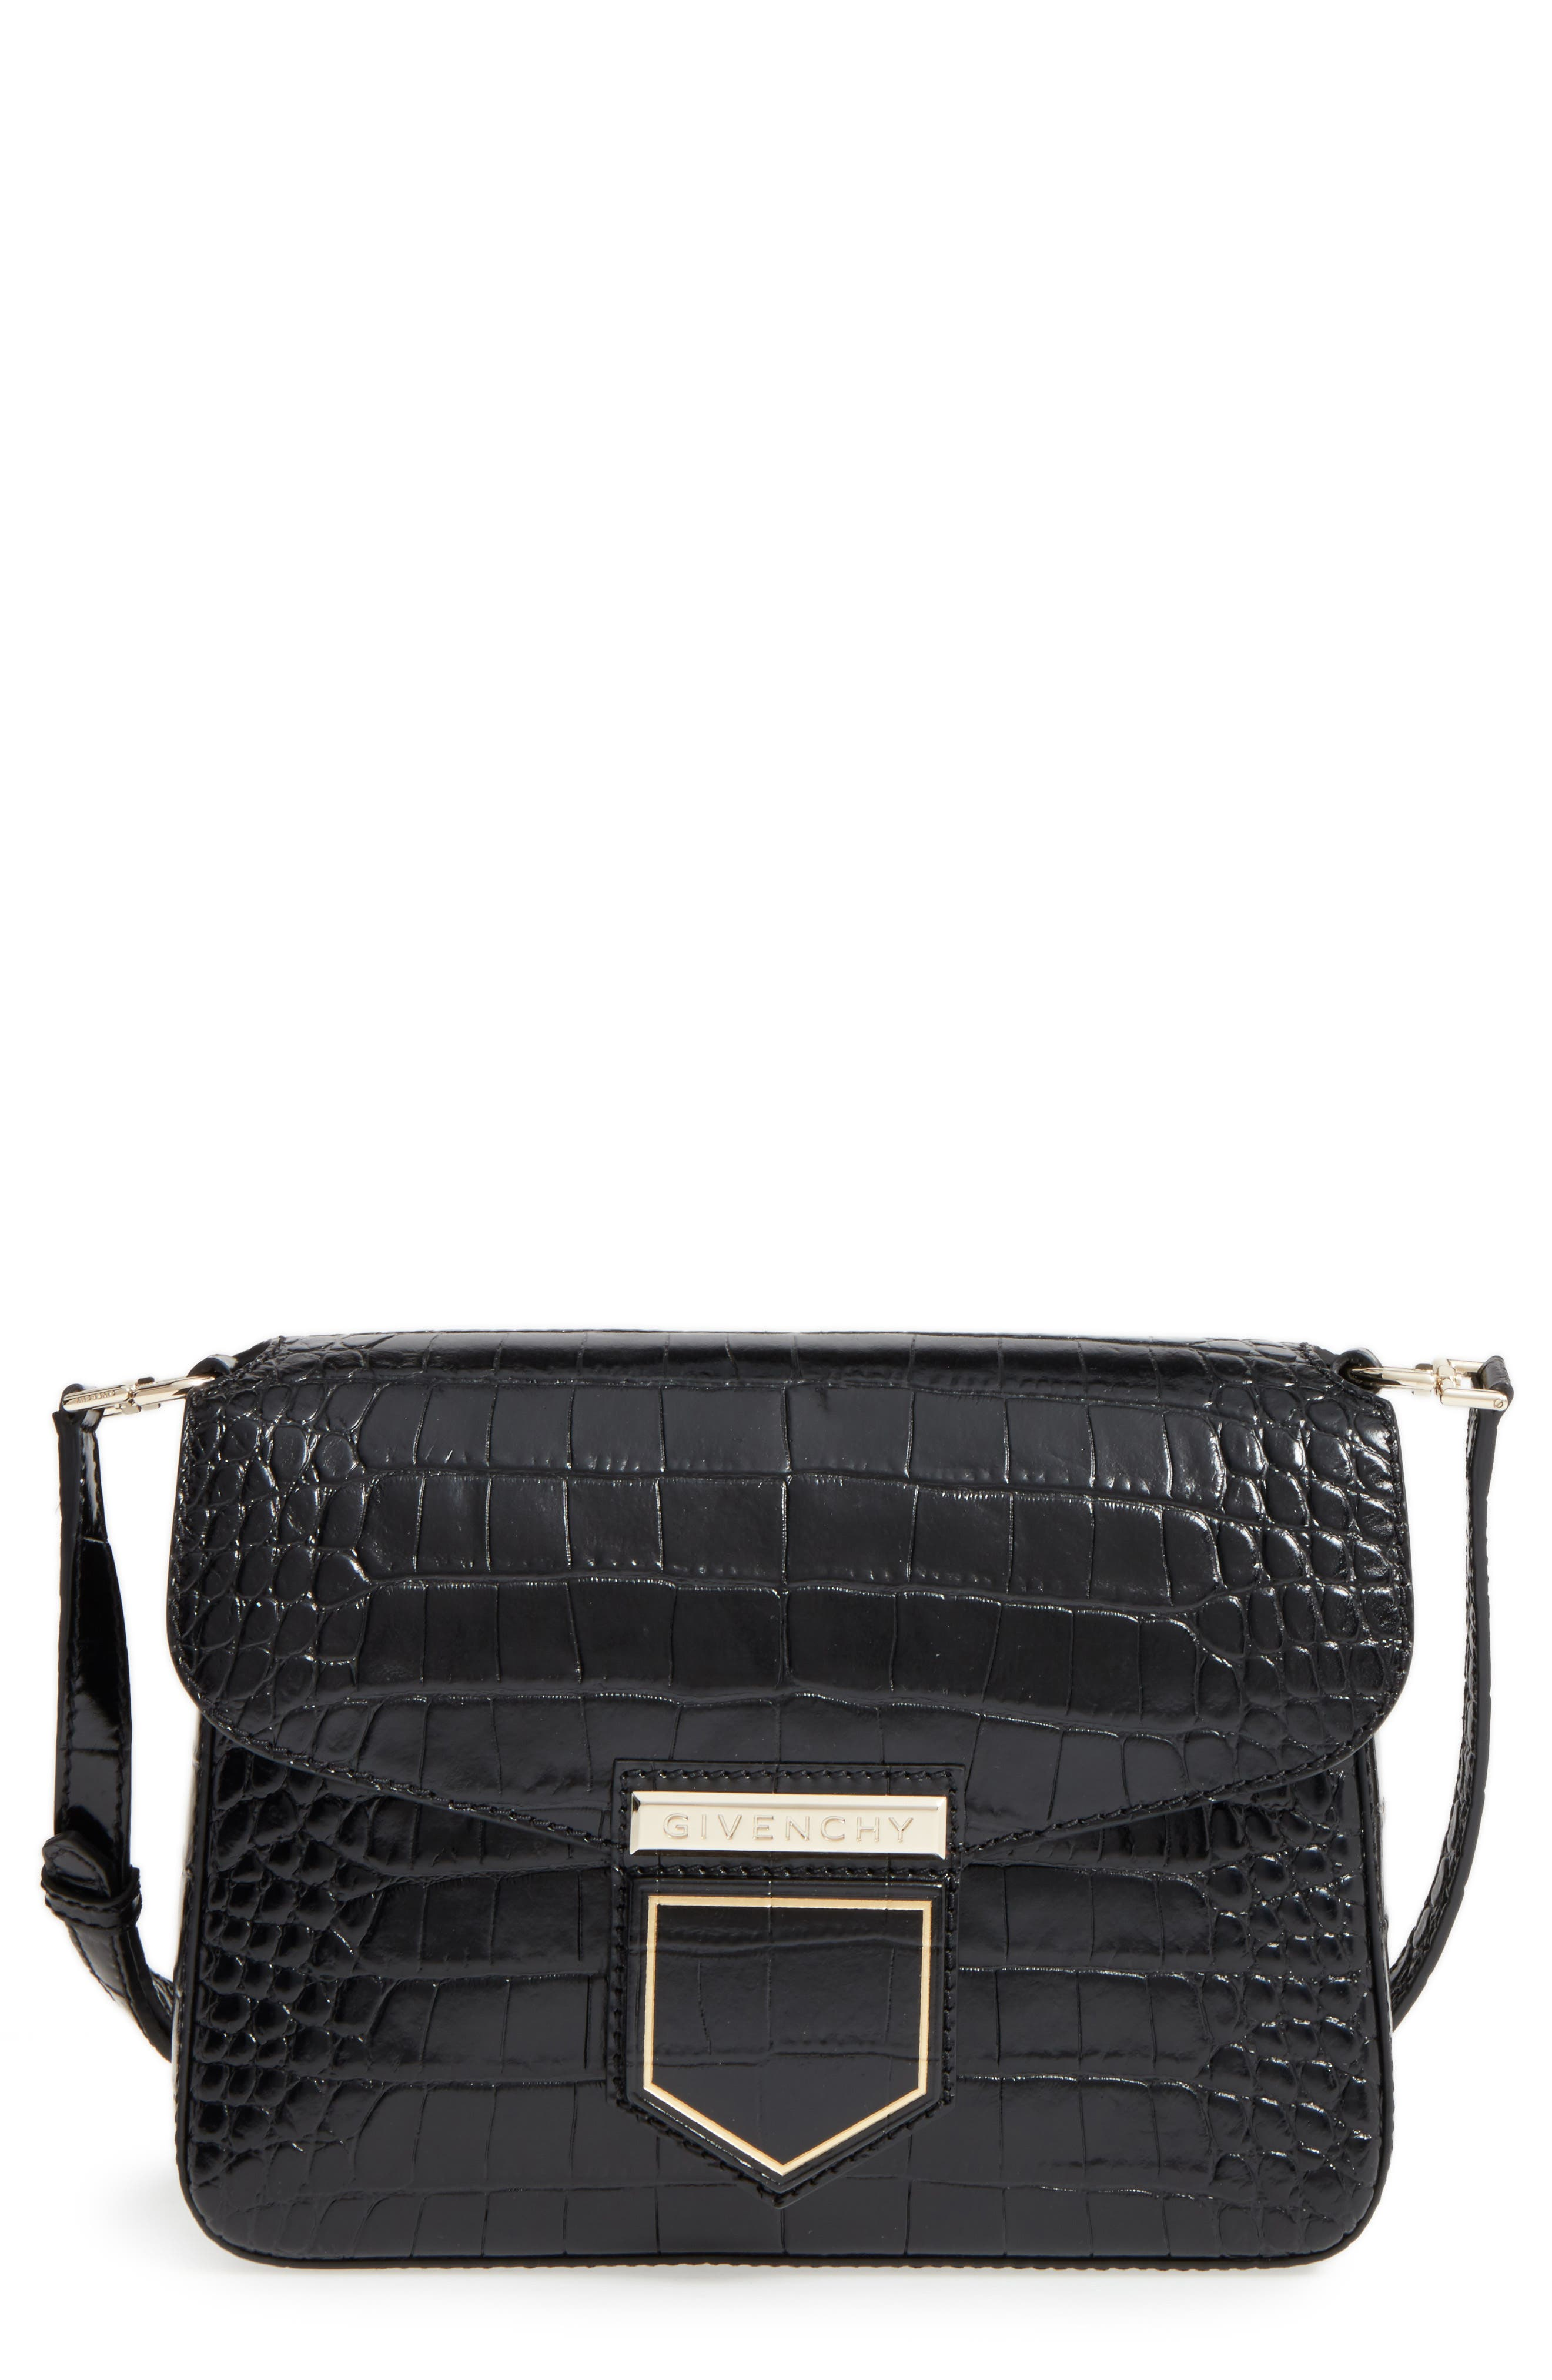 Main Image - Givenchy Small Nobile Croc Embossed Leather Crossbody Bag